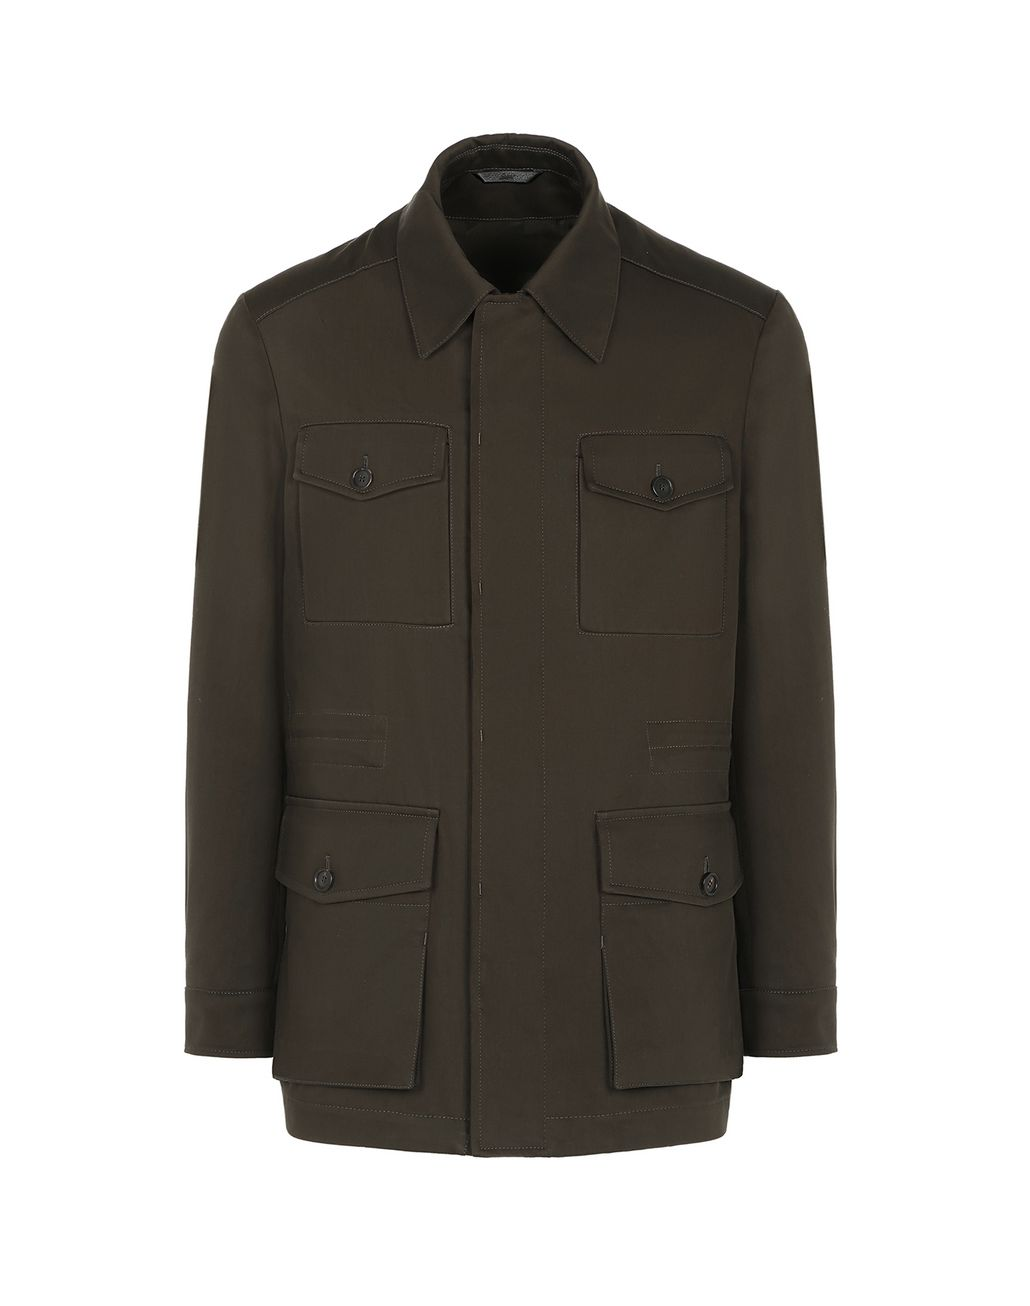 BRIONI Green Field Jacket Outerwear Man f